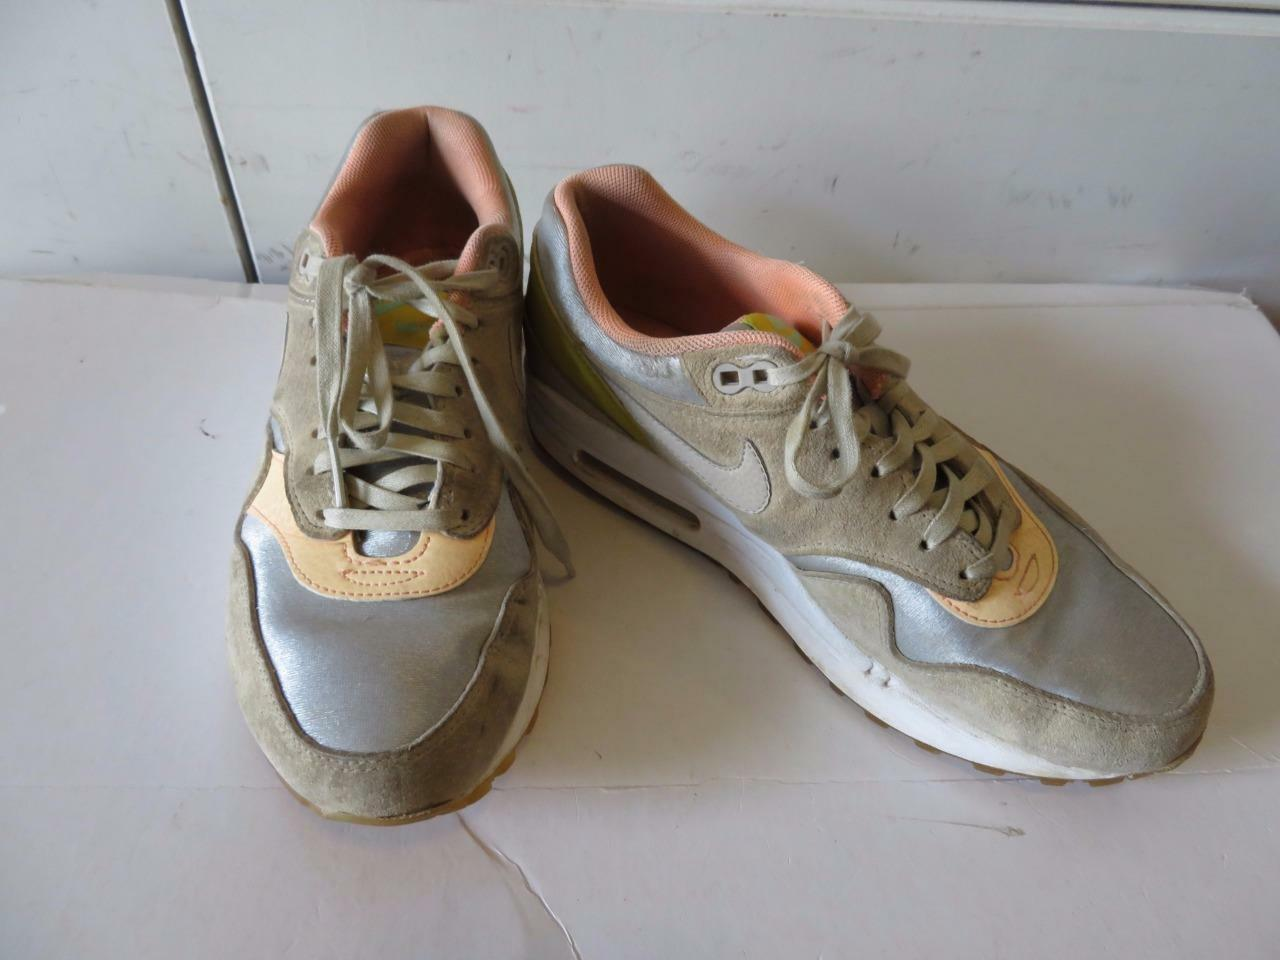 WOMENS NIKE AIR MAX APRICOT,GRAY LEATHER & MATERIAL SNEAKERS SIZE 7.5